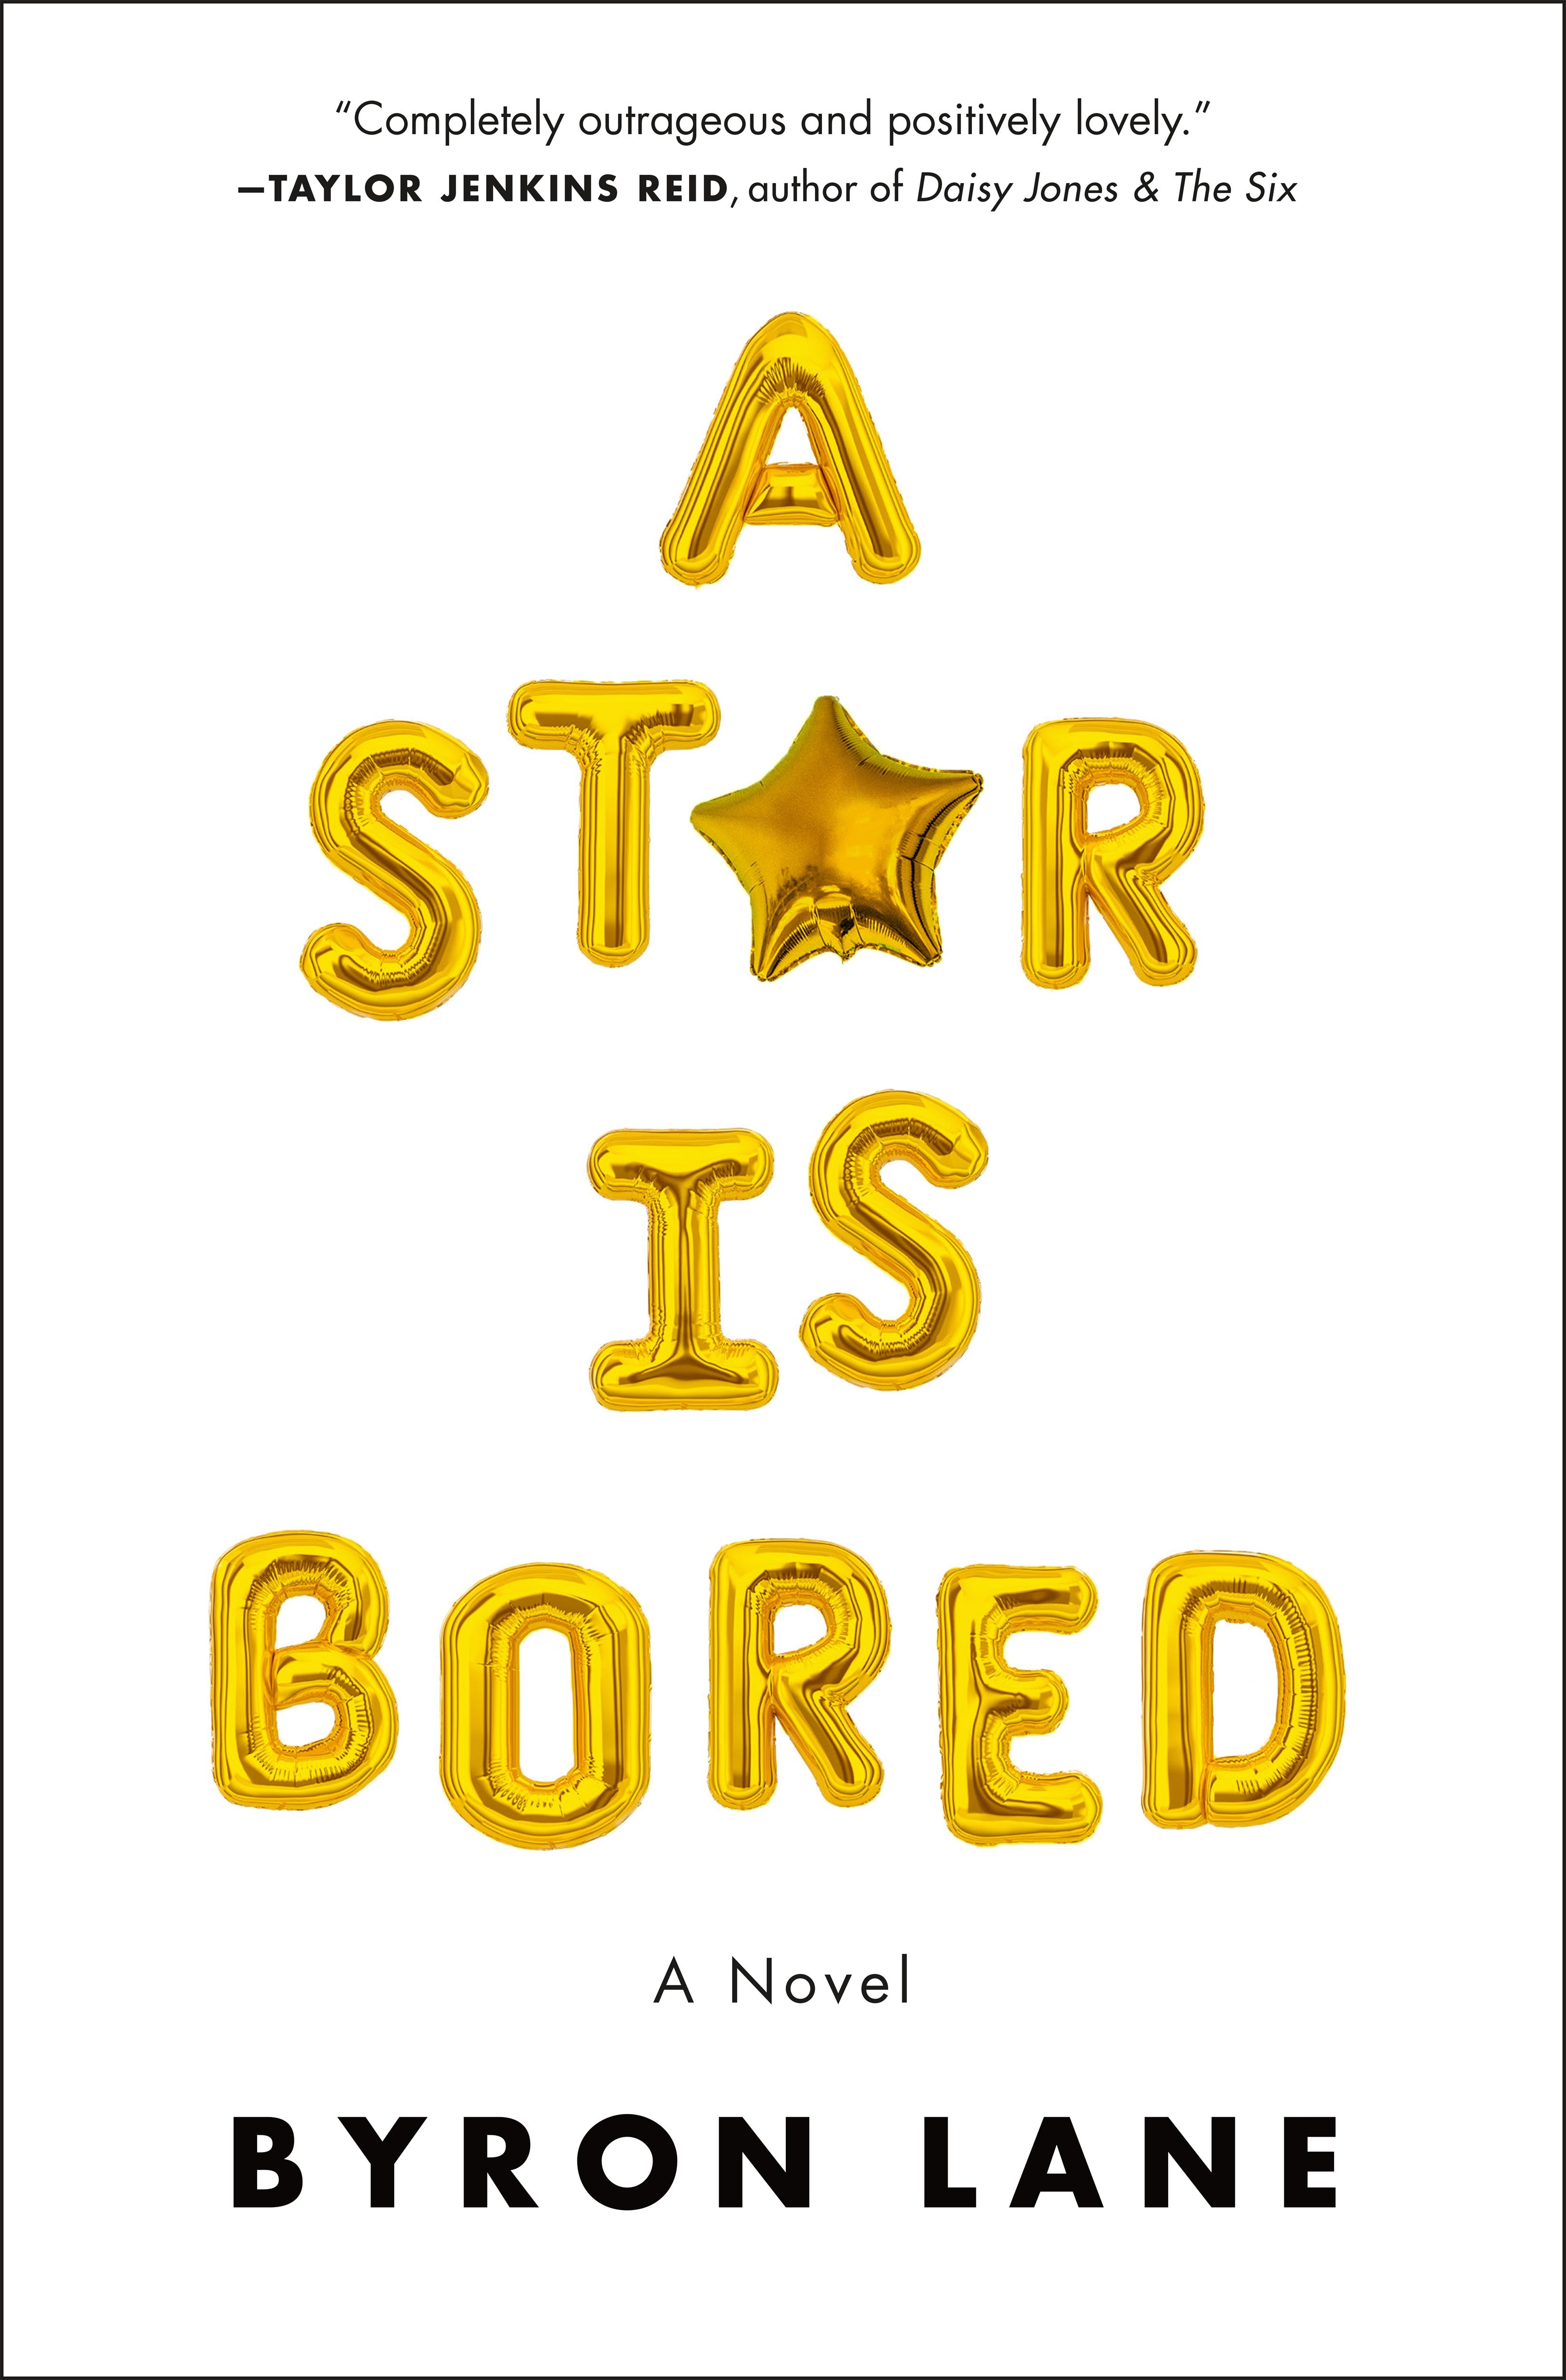 Review: Carrie Fisher-inspired  A Star Is Bored  upends celebrity culture